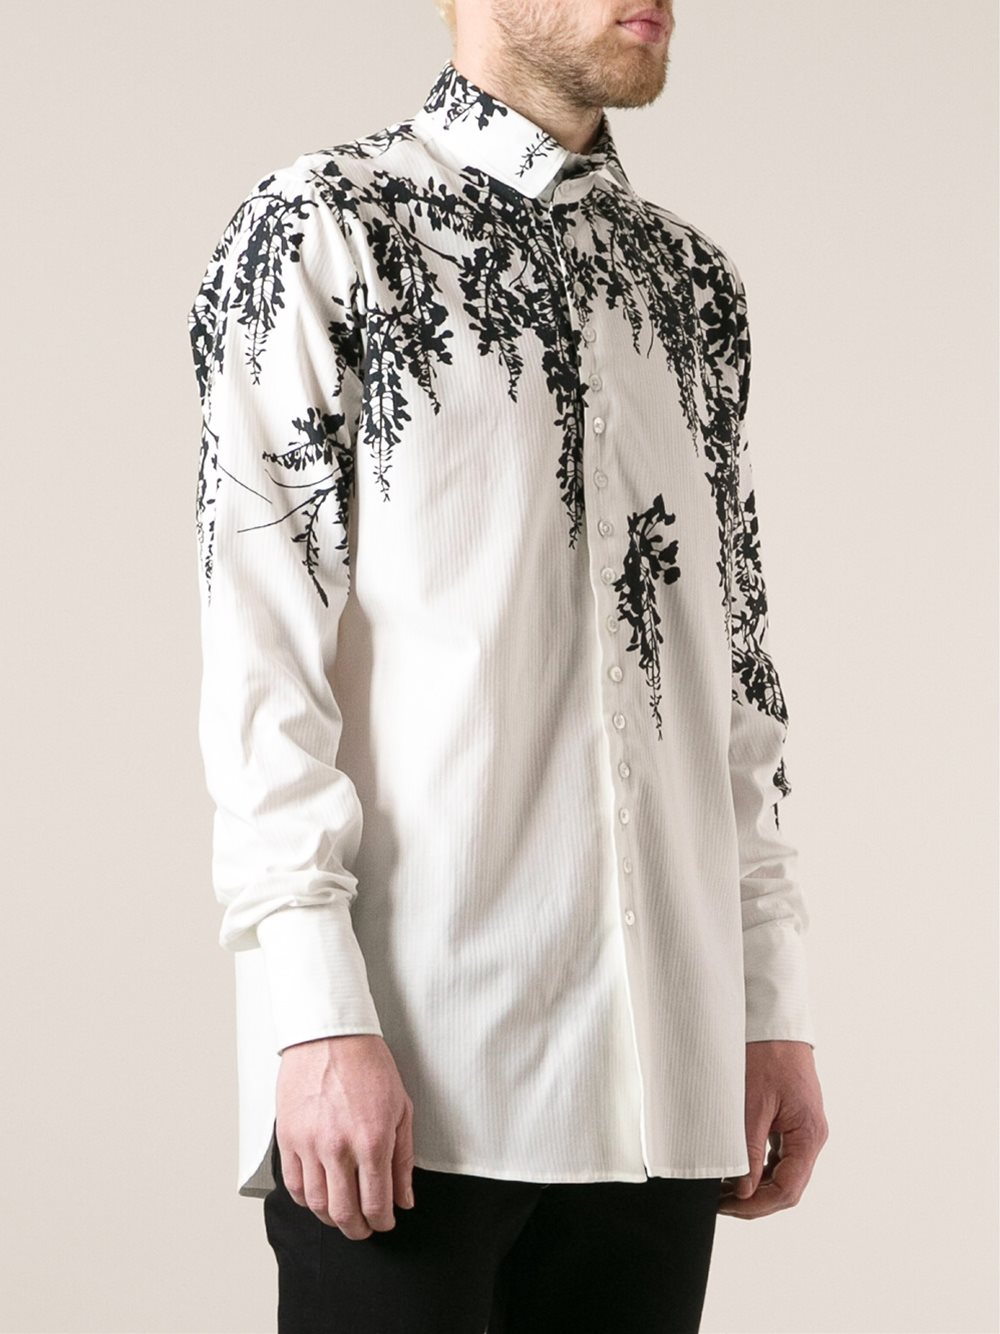 floral silhouette shirt $494.96